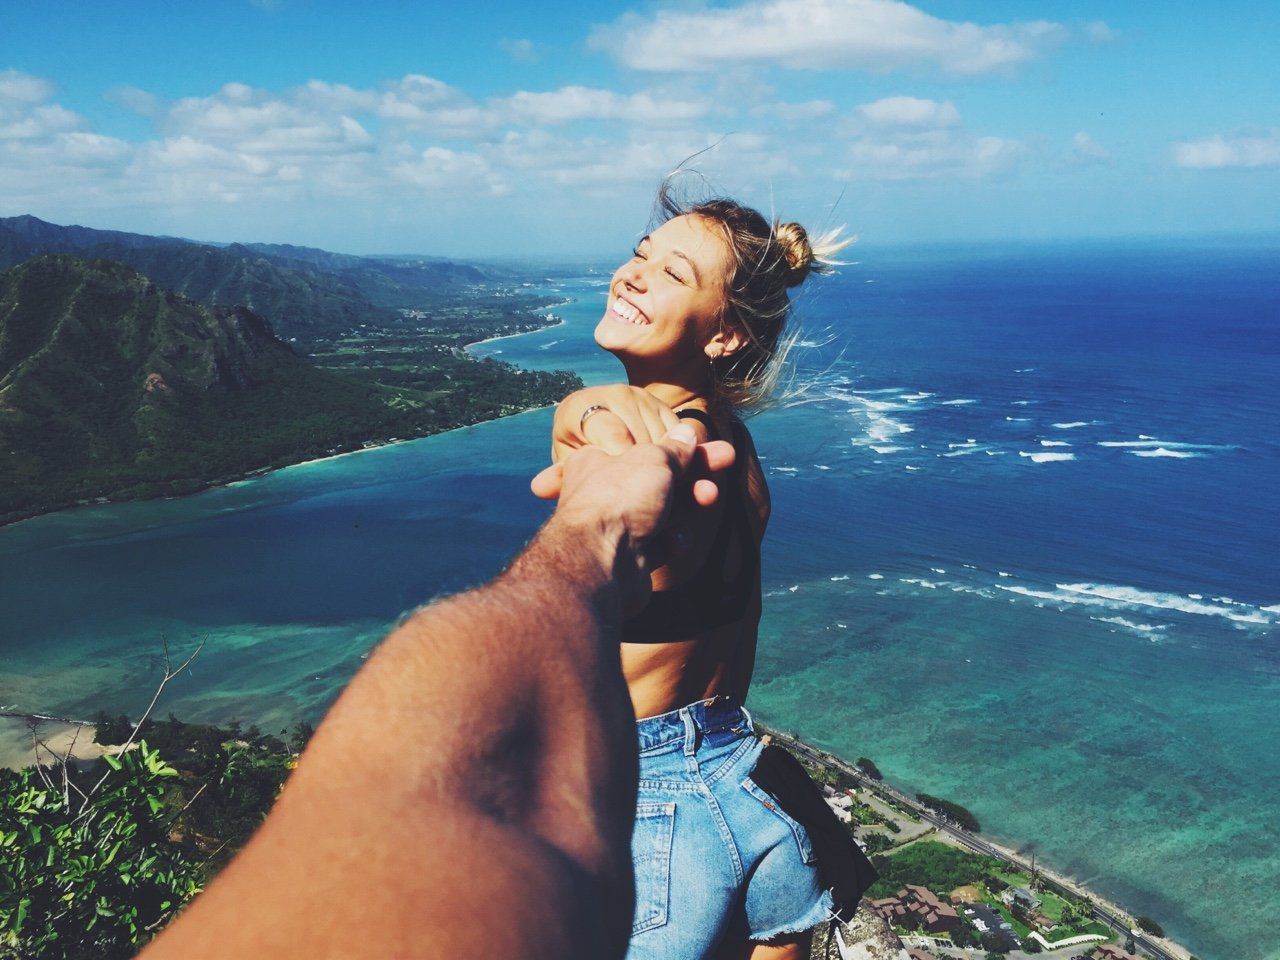 The Top Vacation Spots for Single Women